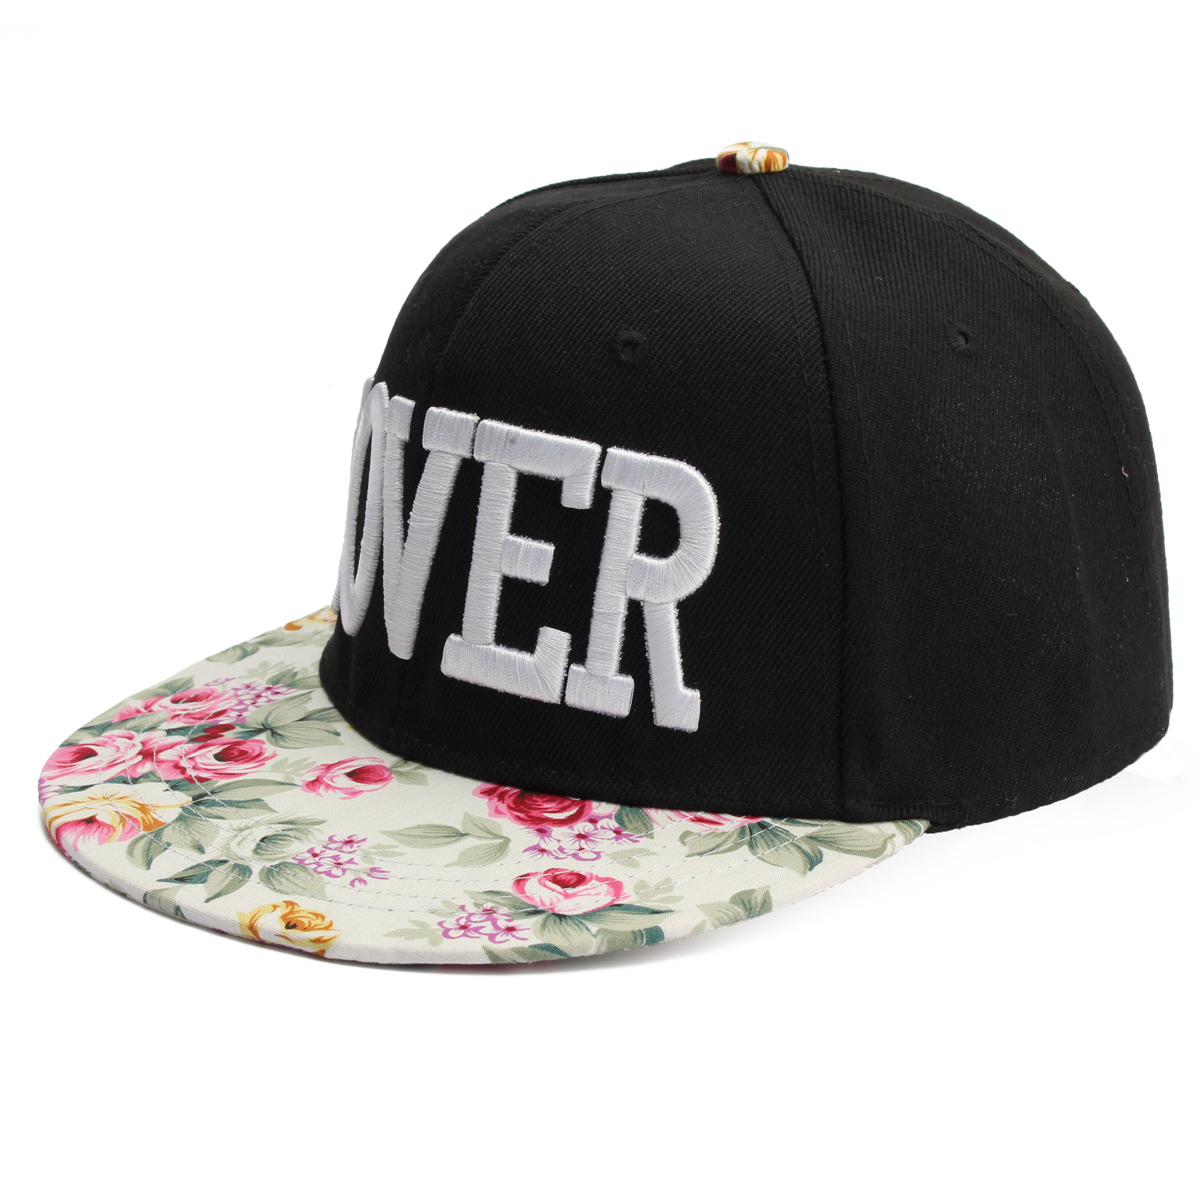 d505b8b066f ... new zealand new men women snapback baseball cap hip hop hat floral  letter adjustable canvas ebay